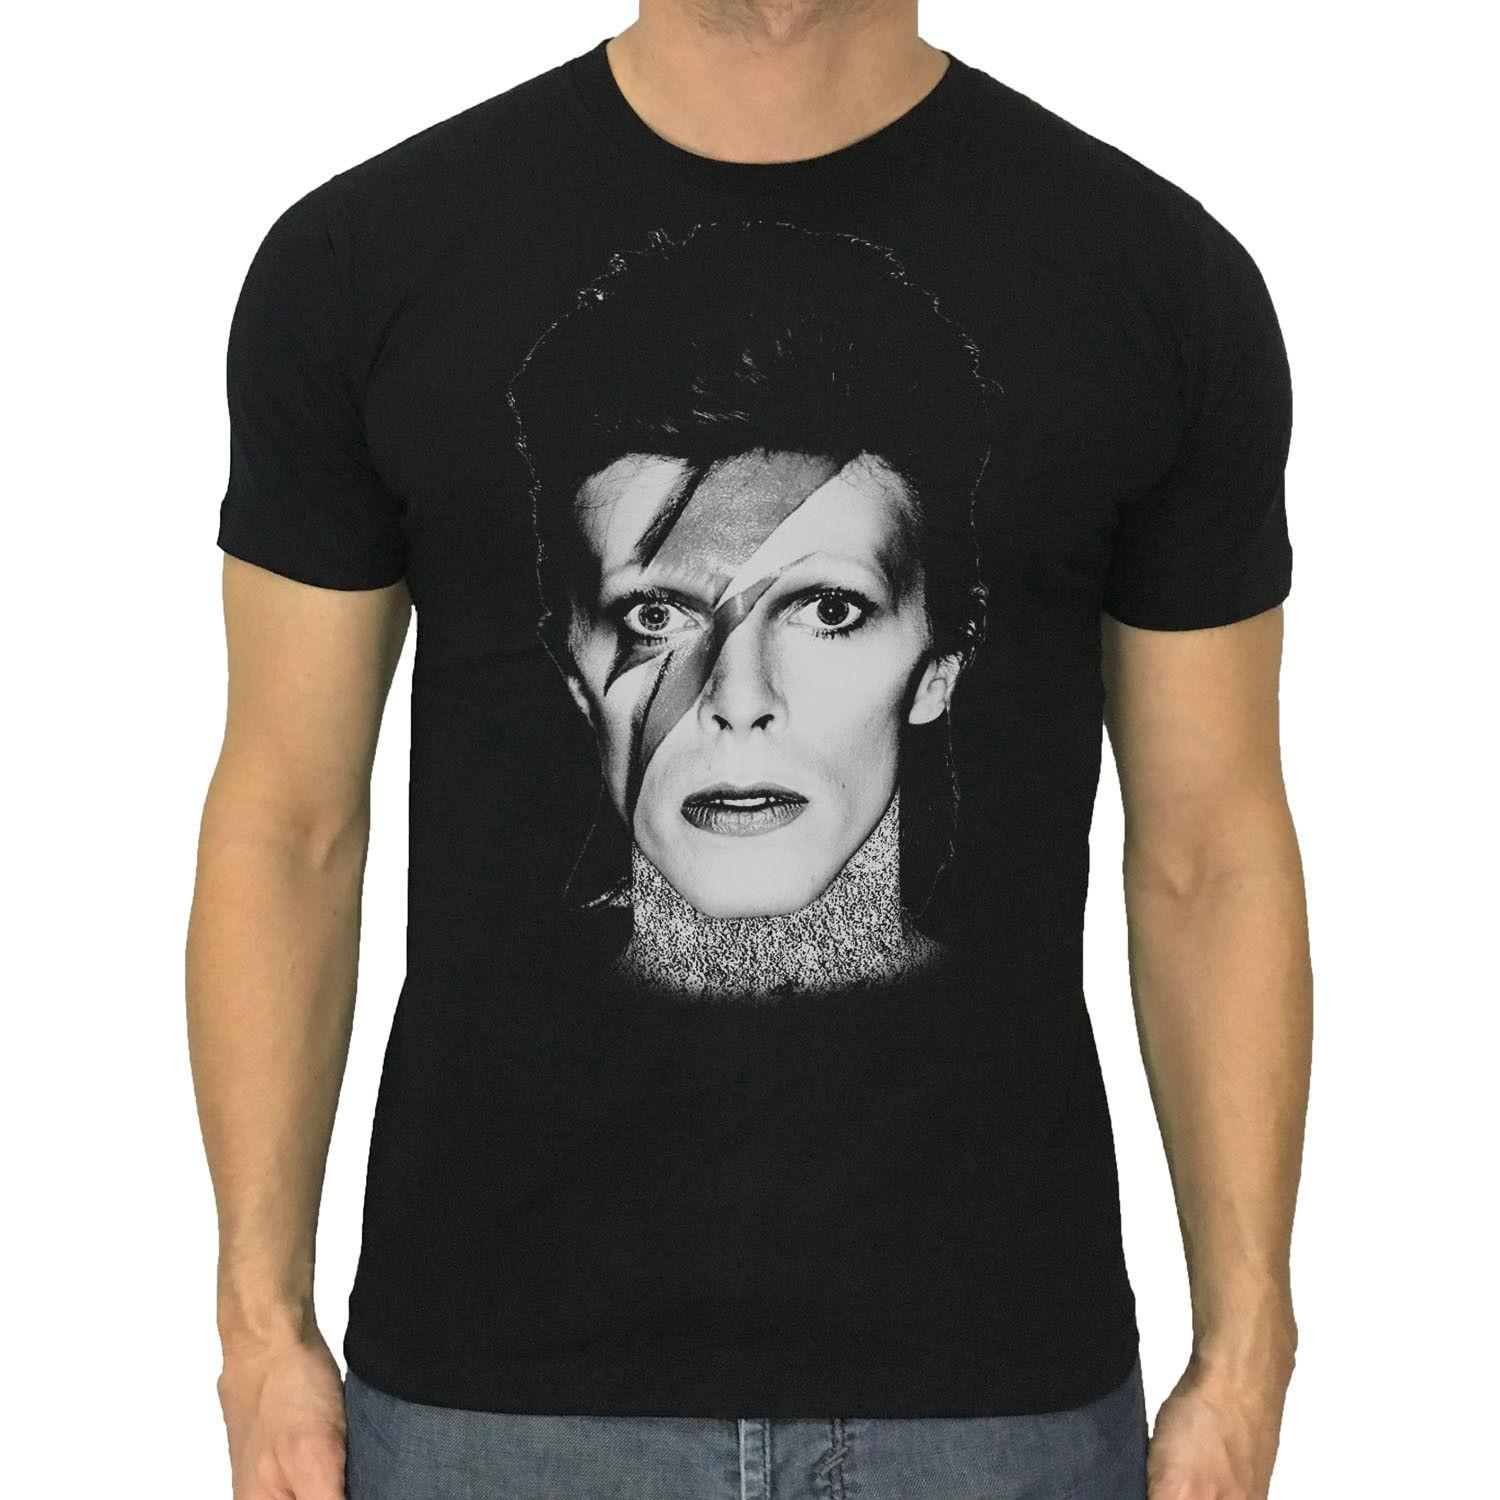 956c7291a David Bowie T Shirt Aladdin Sane New Men Black Or Dark Grey Shirt S To  2XLFunny Unisex Casual Tshirt Top Gag T Shirts T Shirts With Prints From ...